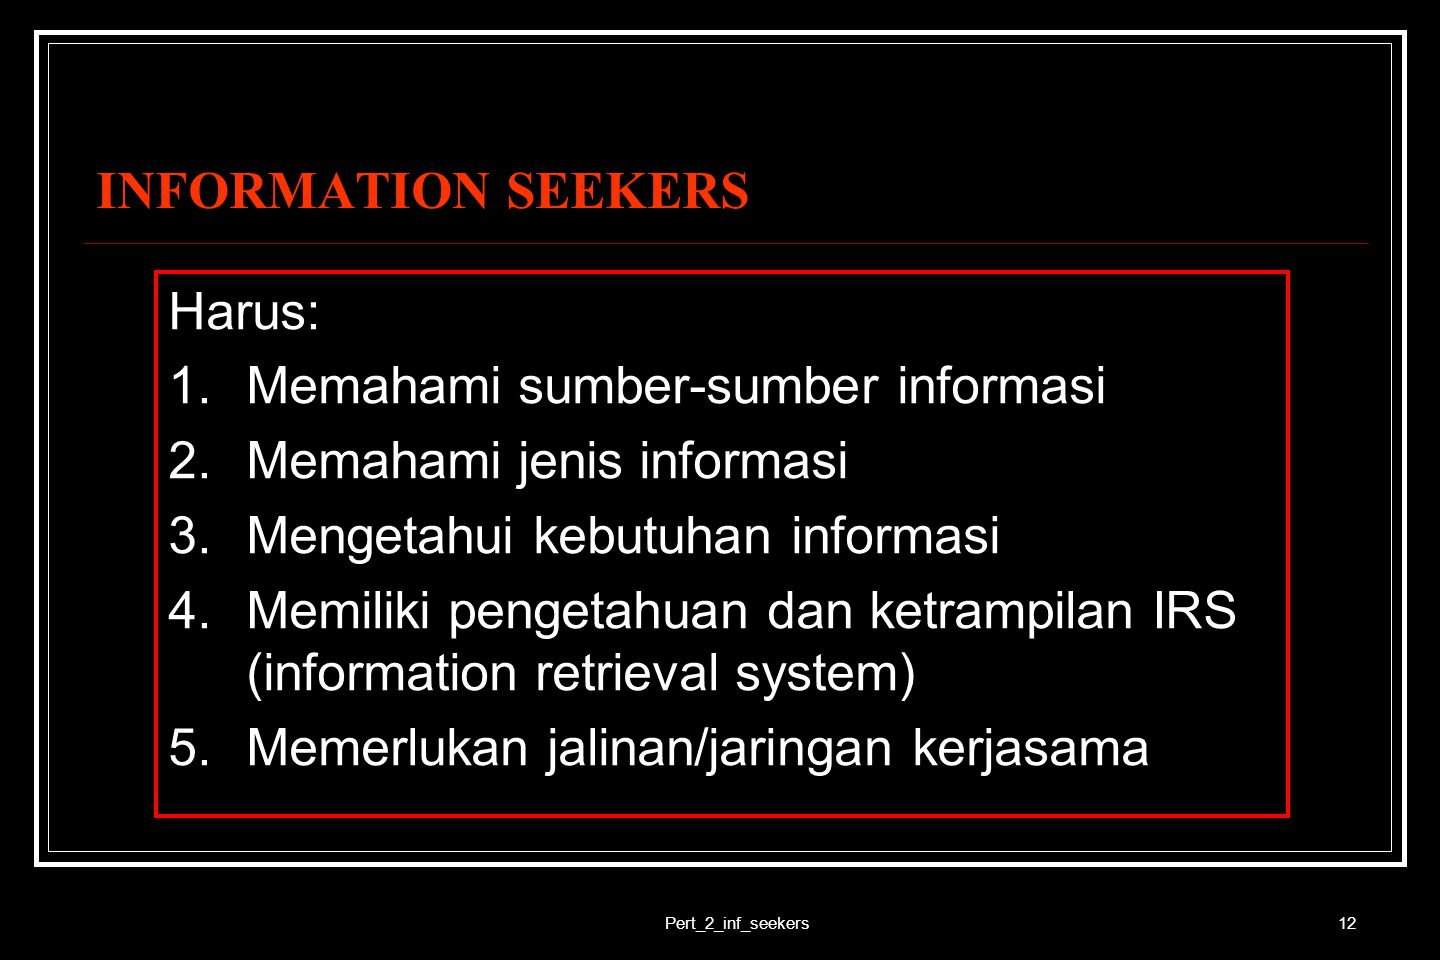 Pert_2_inf_seekers13 INFORMATION ENVIRONMENT 1.Persons as general 2.Experts (professionals) 3.Milling lists (discussion group) 4.Researchers 5.Printed materials 6.Libraries 7.Bookshops 8.Publishers